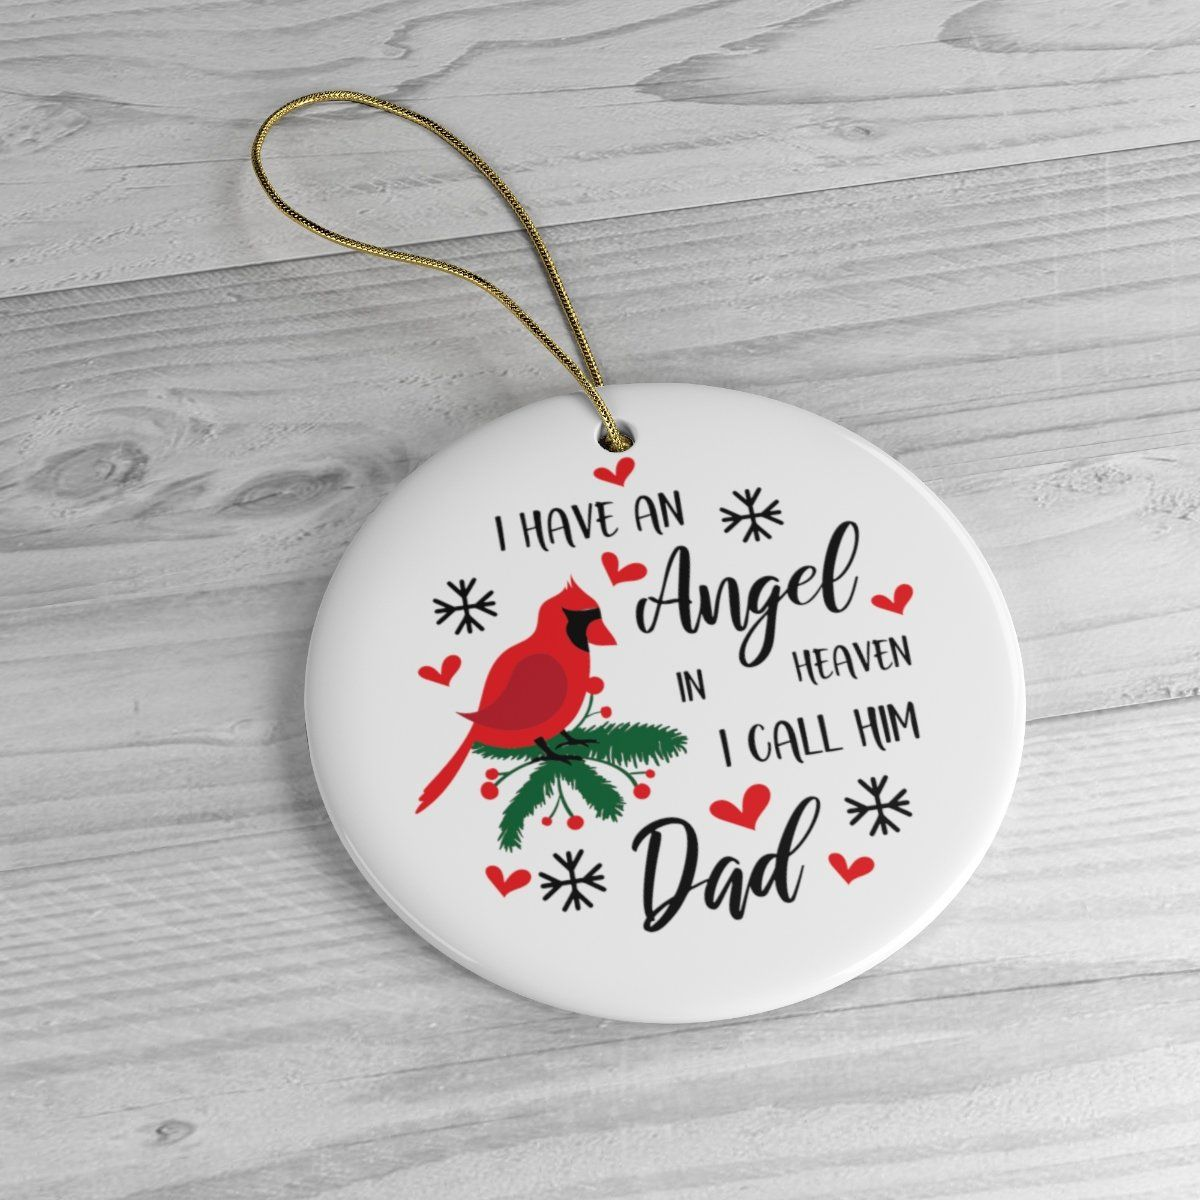 Memorial christmas tree ornament for dad with red cardinal